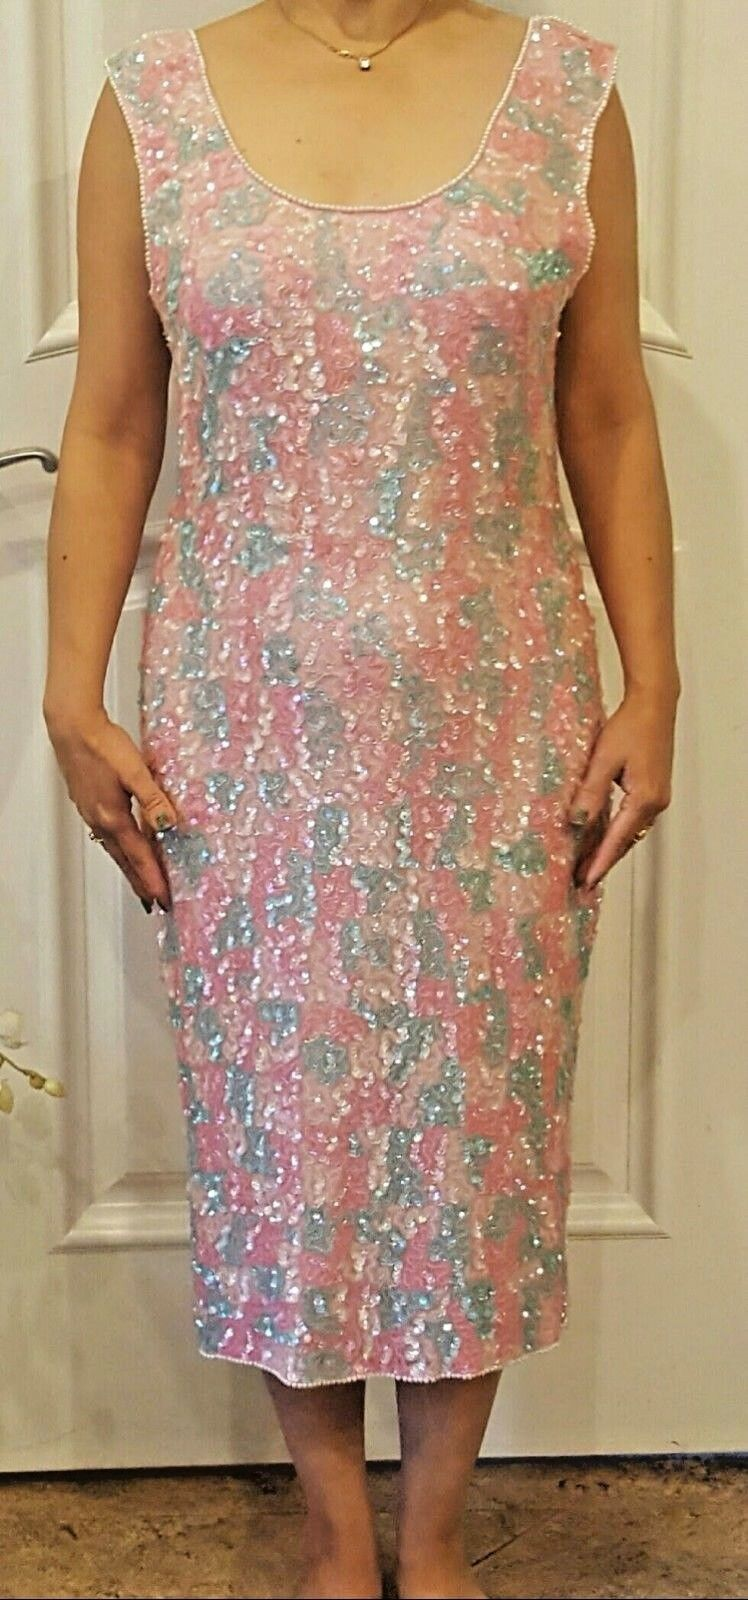 Sequined sleeveless dress party evening wear shiny pink light green hand beaded.